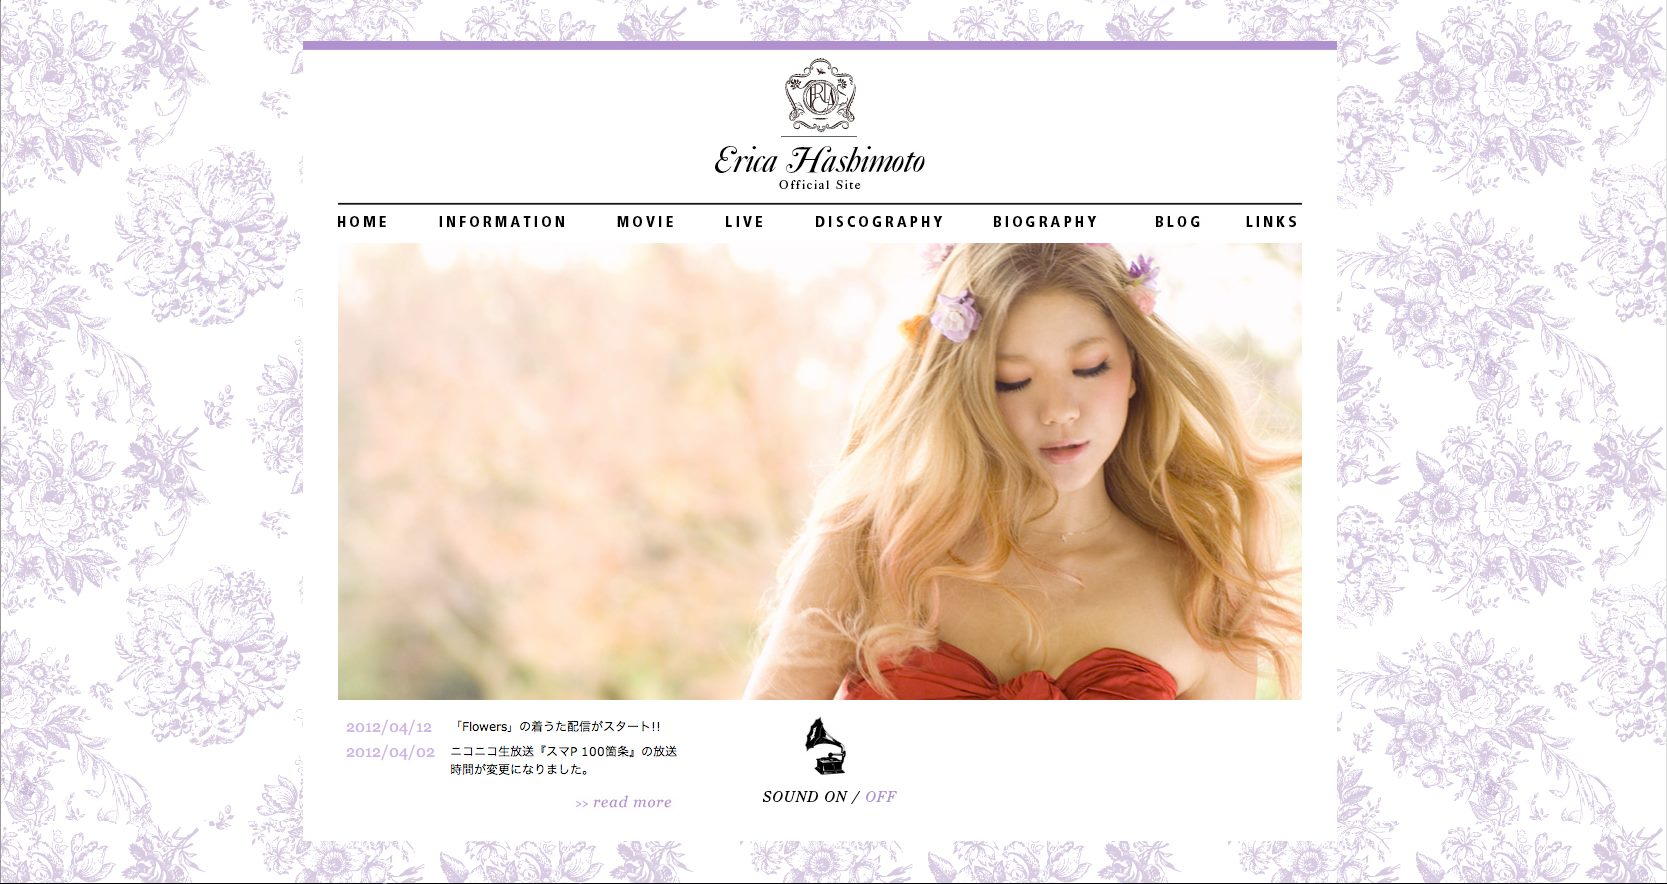 ERICA HASHIMOTO OFFICIAL SITE